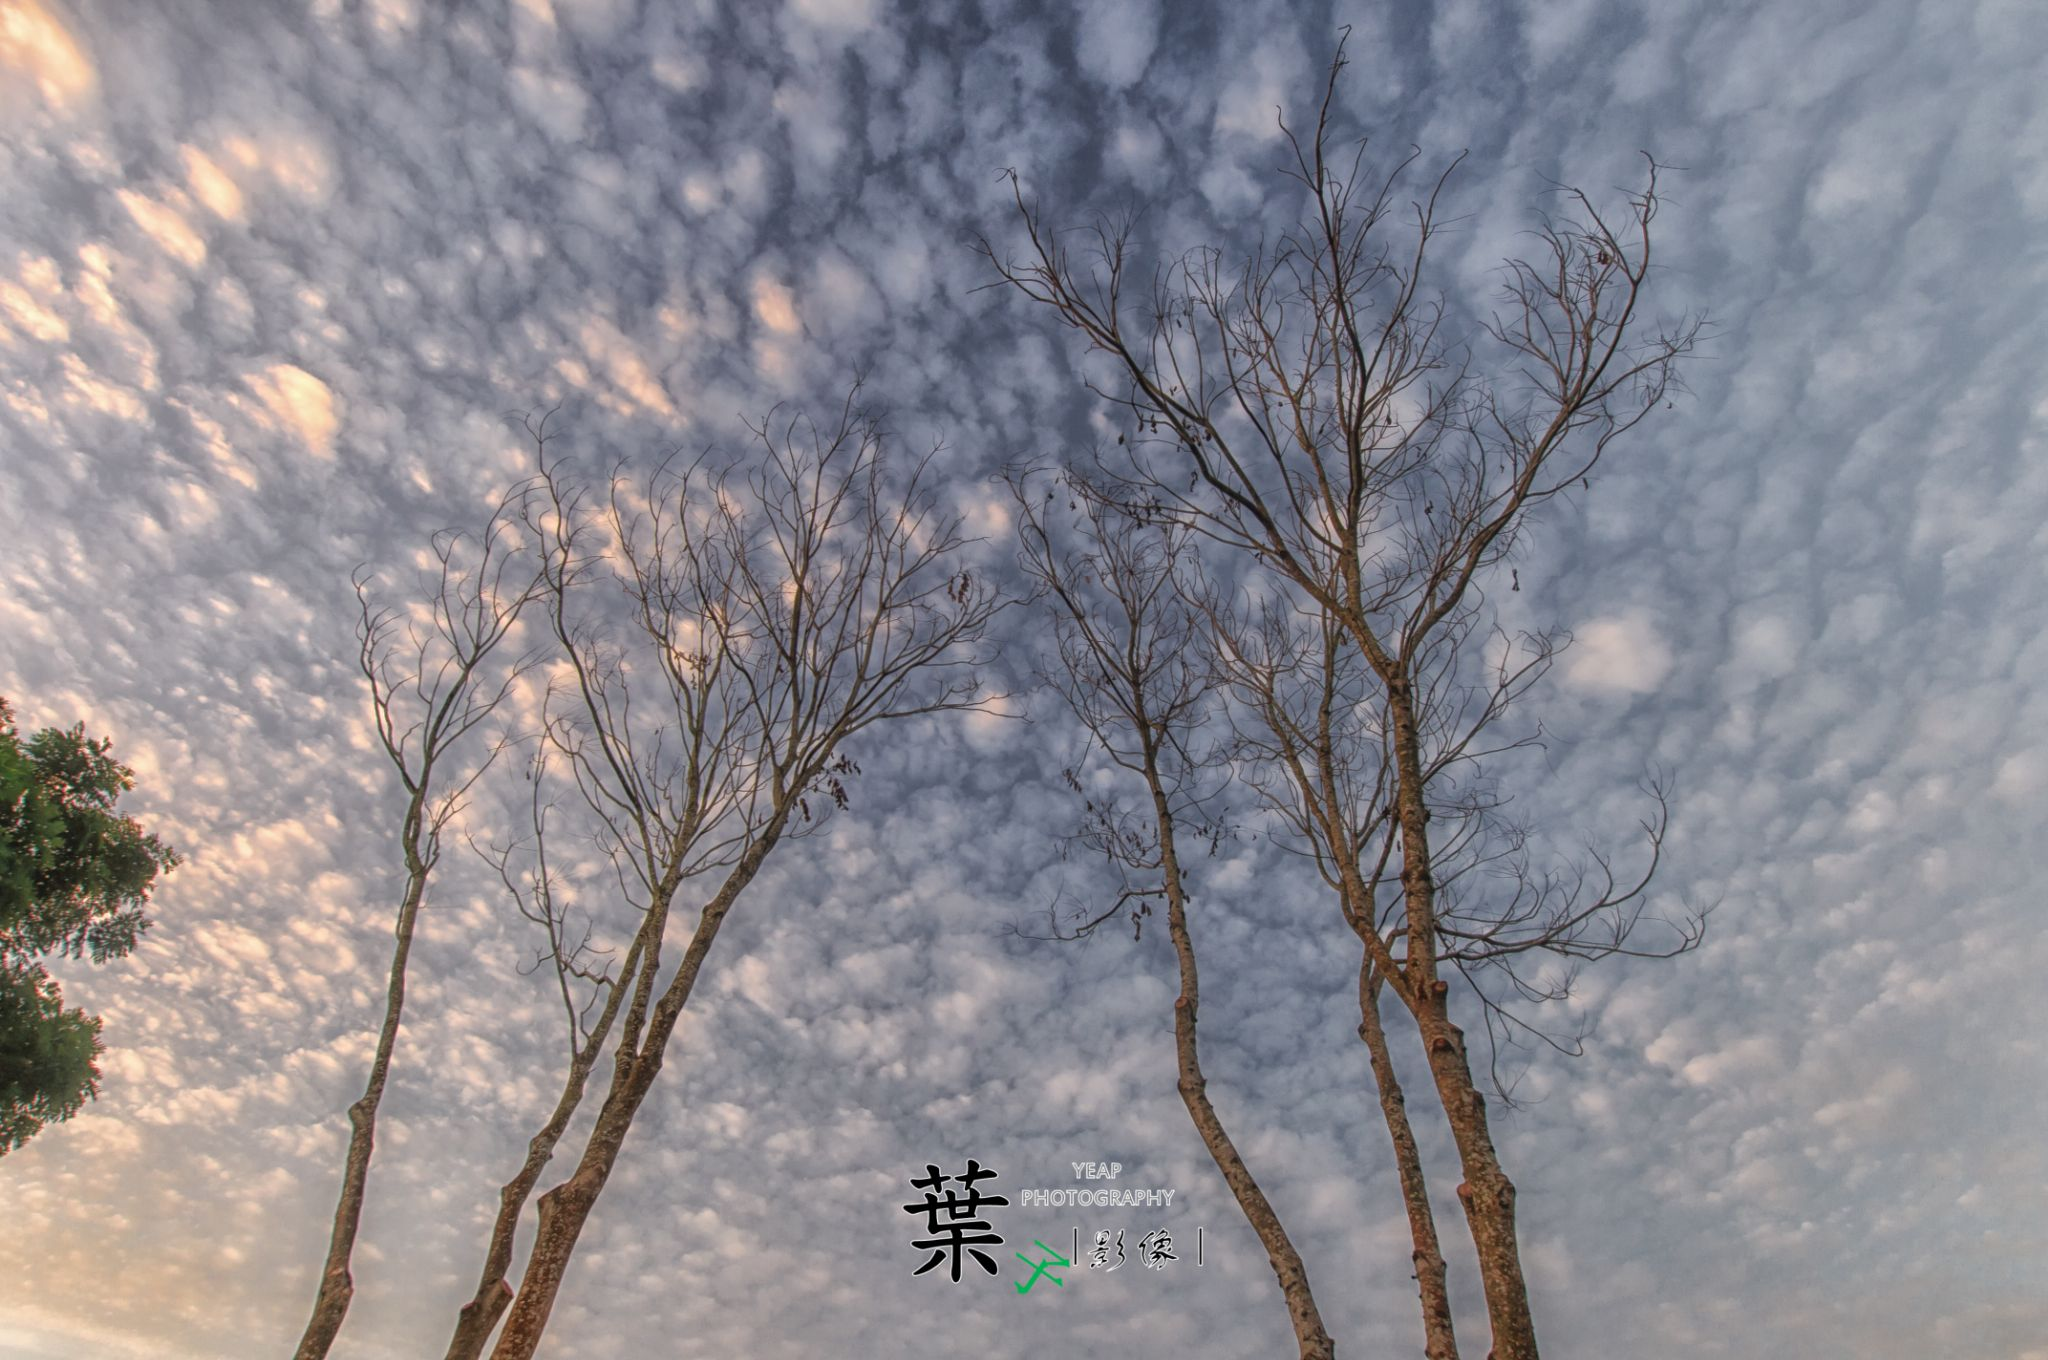 The Evening  by Chun Siang Yeap